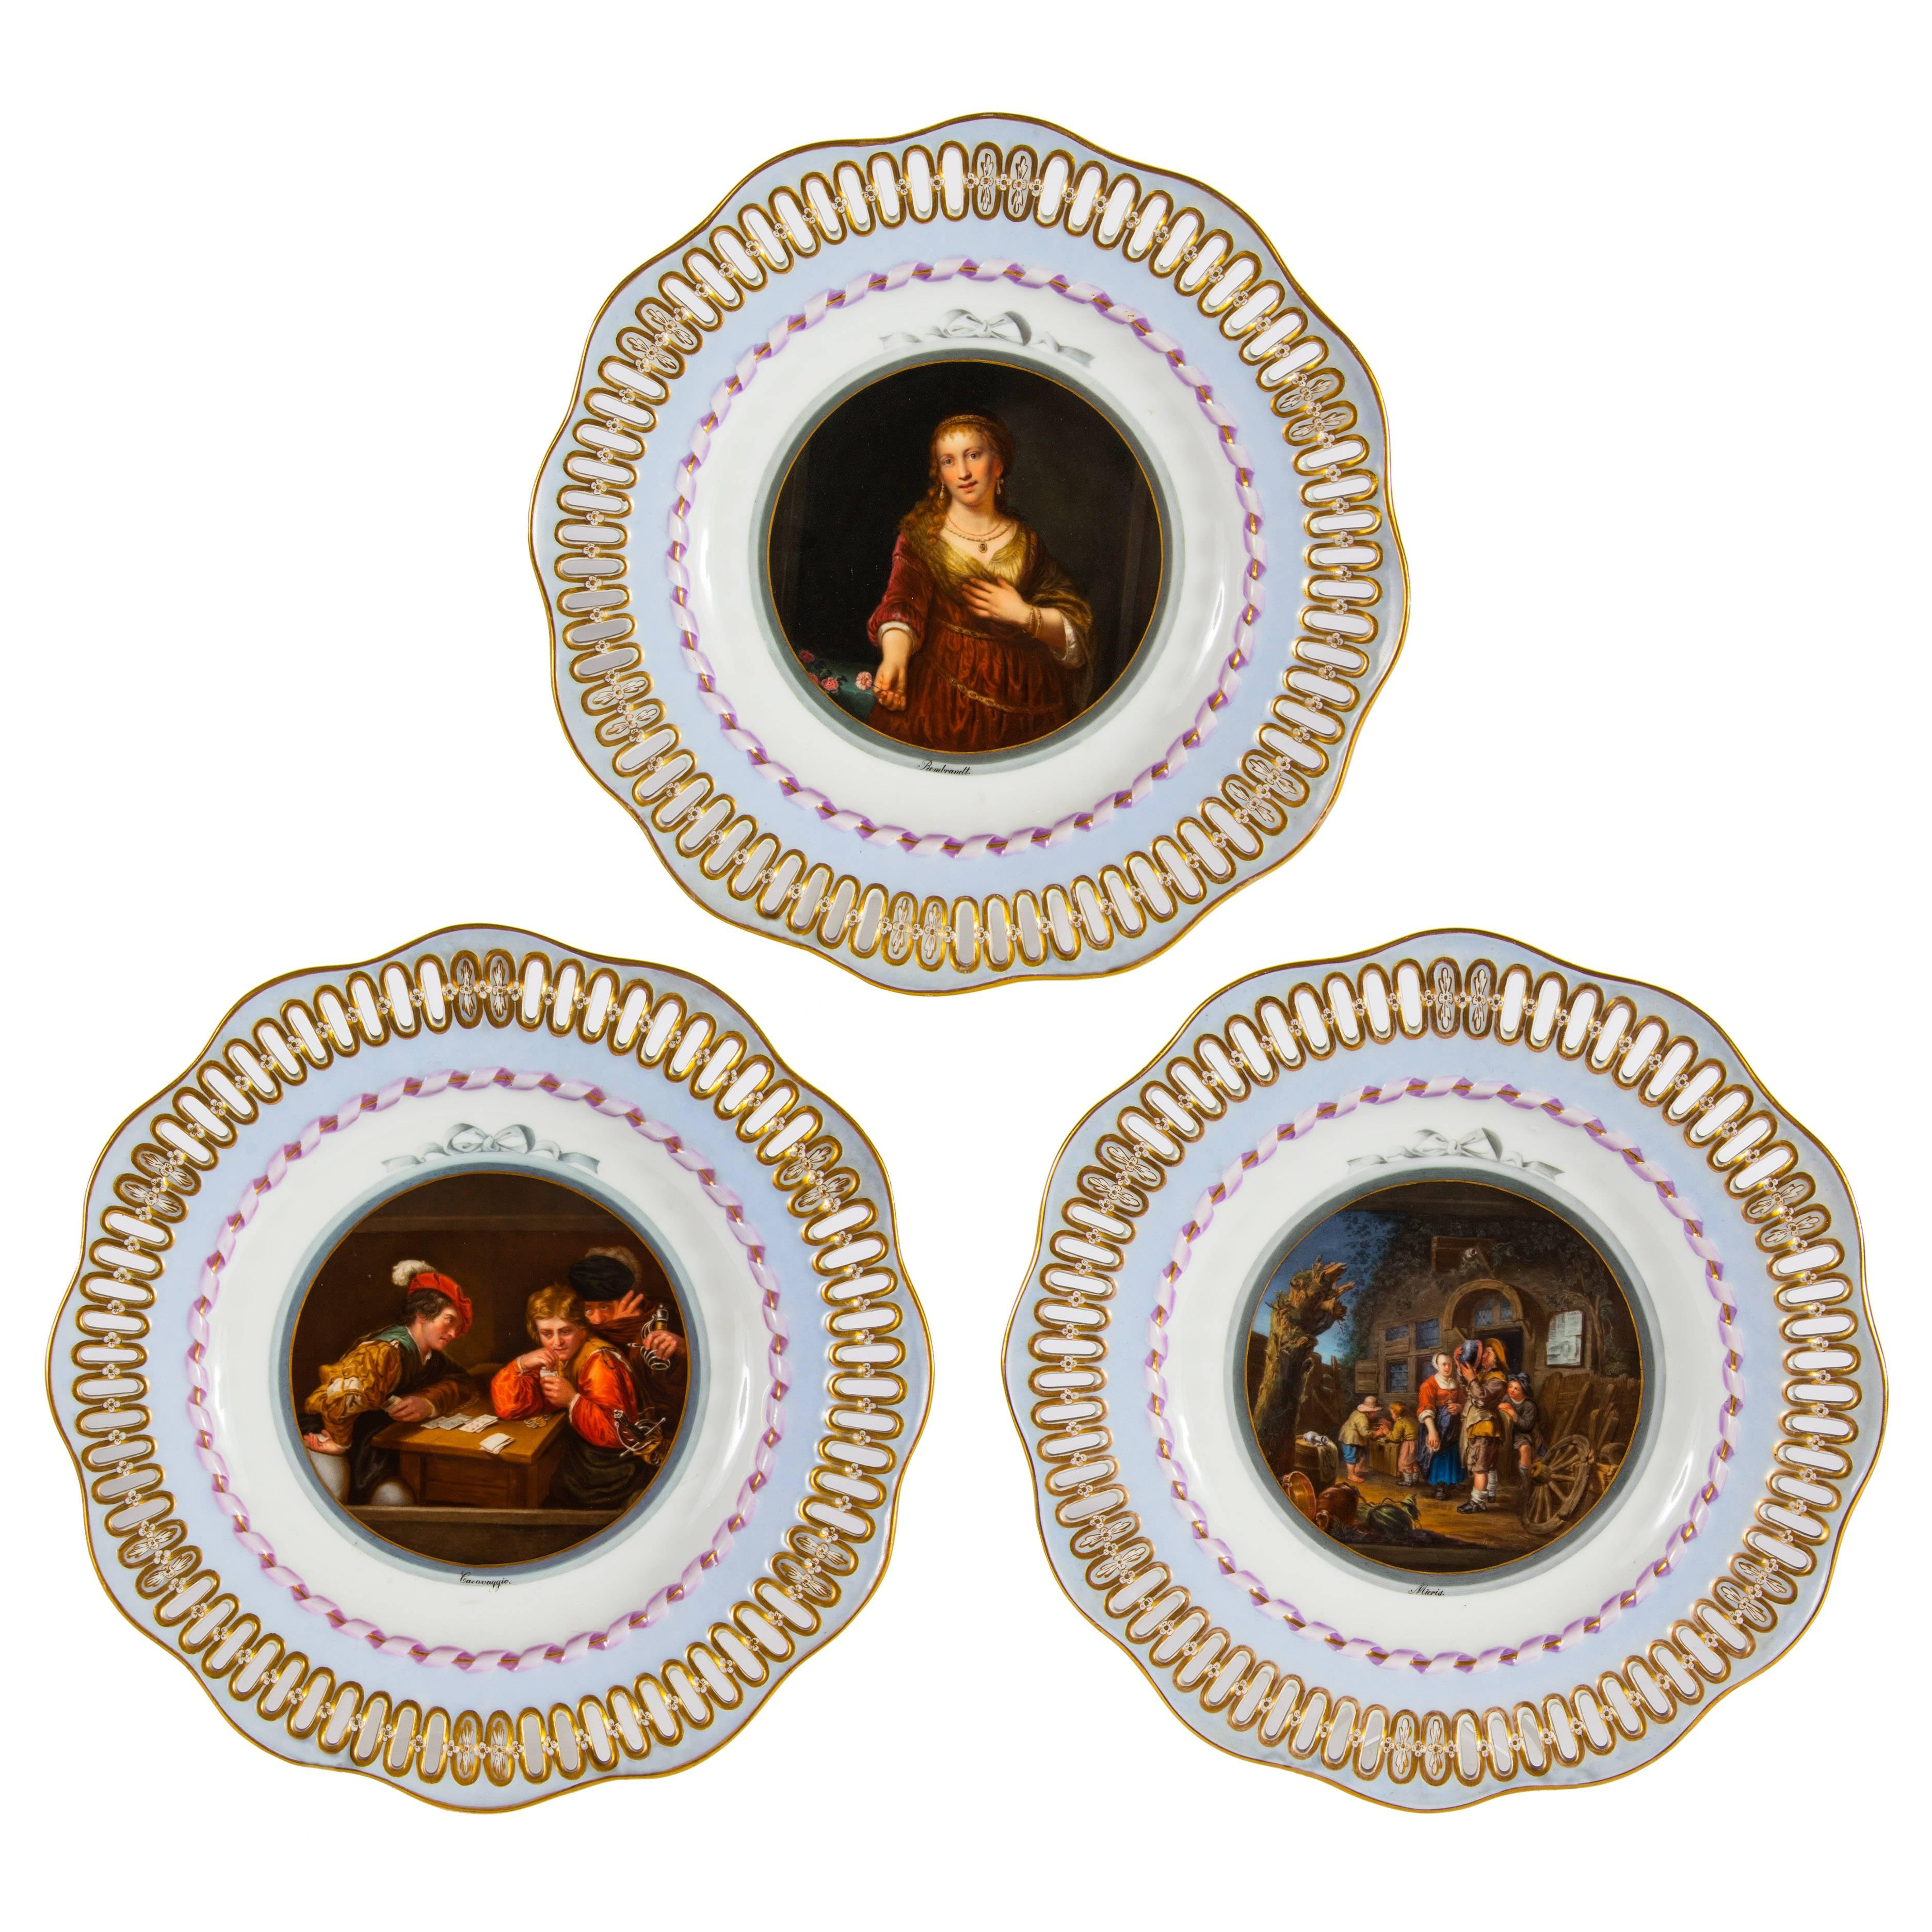 Three Meissen Porcelain Plates Showing Old Master Paintings  sc 1 st  1stDibs & German Dinner Plates - 66 For Sale at 1stdibs